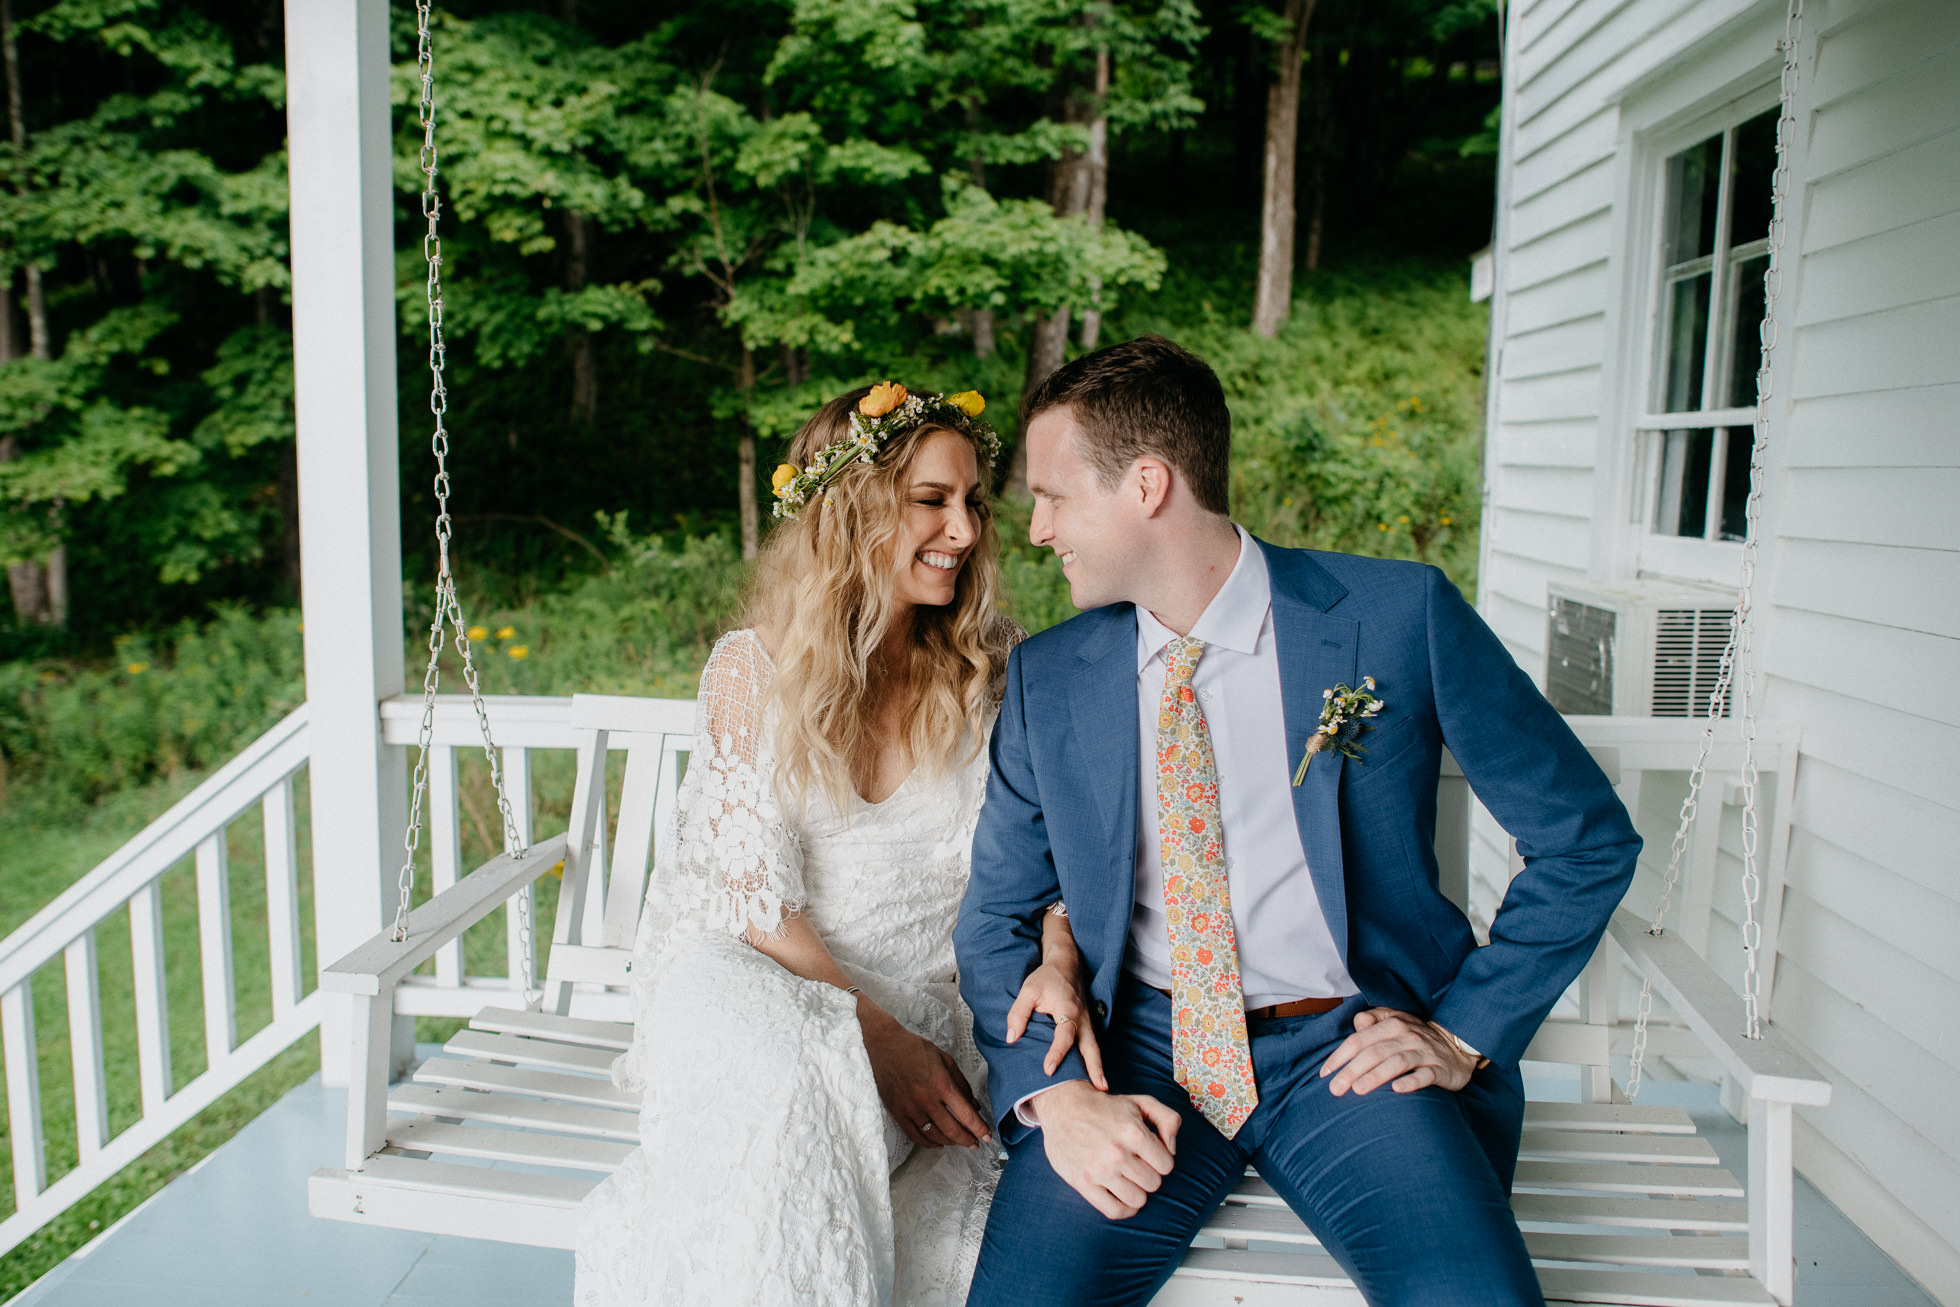 porch swing wedding photos